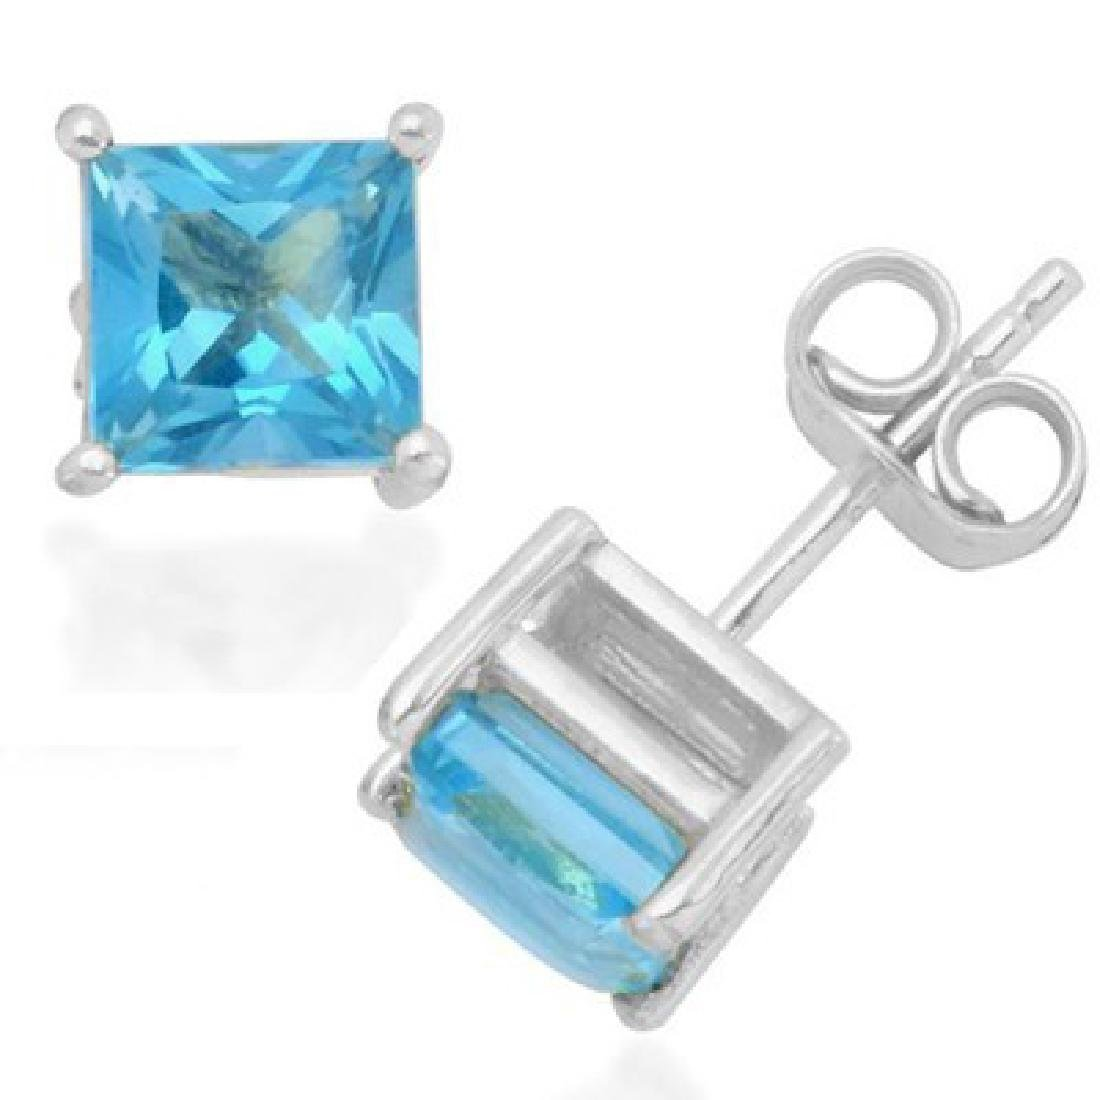 PRETTY 2CT PRINCESS CUT BLUE TOPAZ EARRINGS